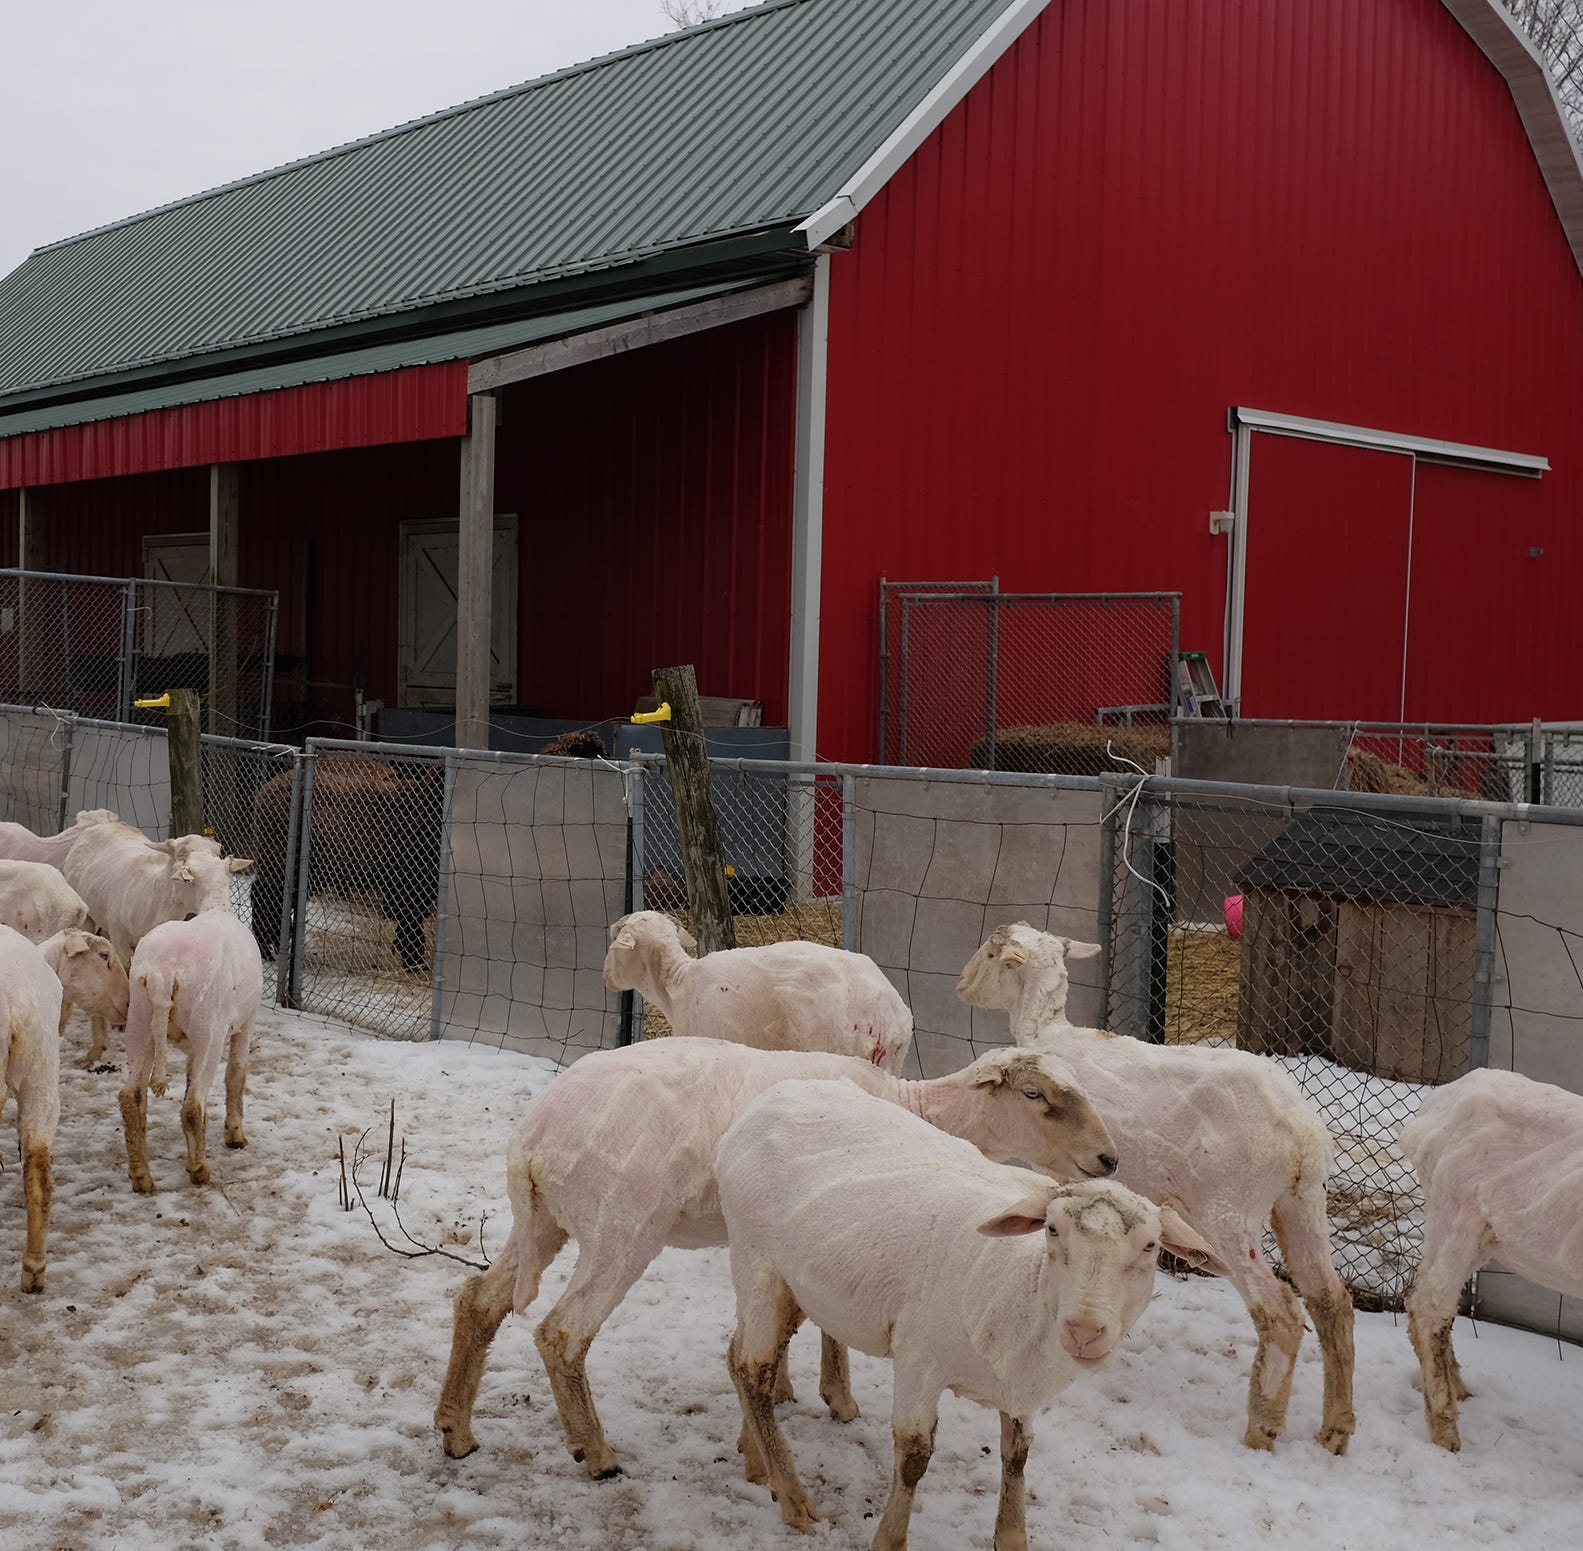 Putnam: Sweet dreams of a sheep farm comes true for retired state worker